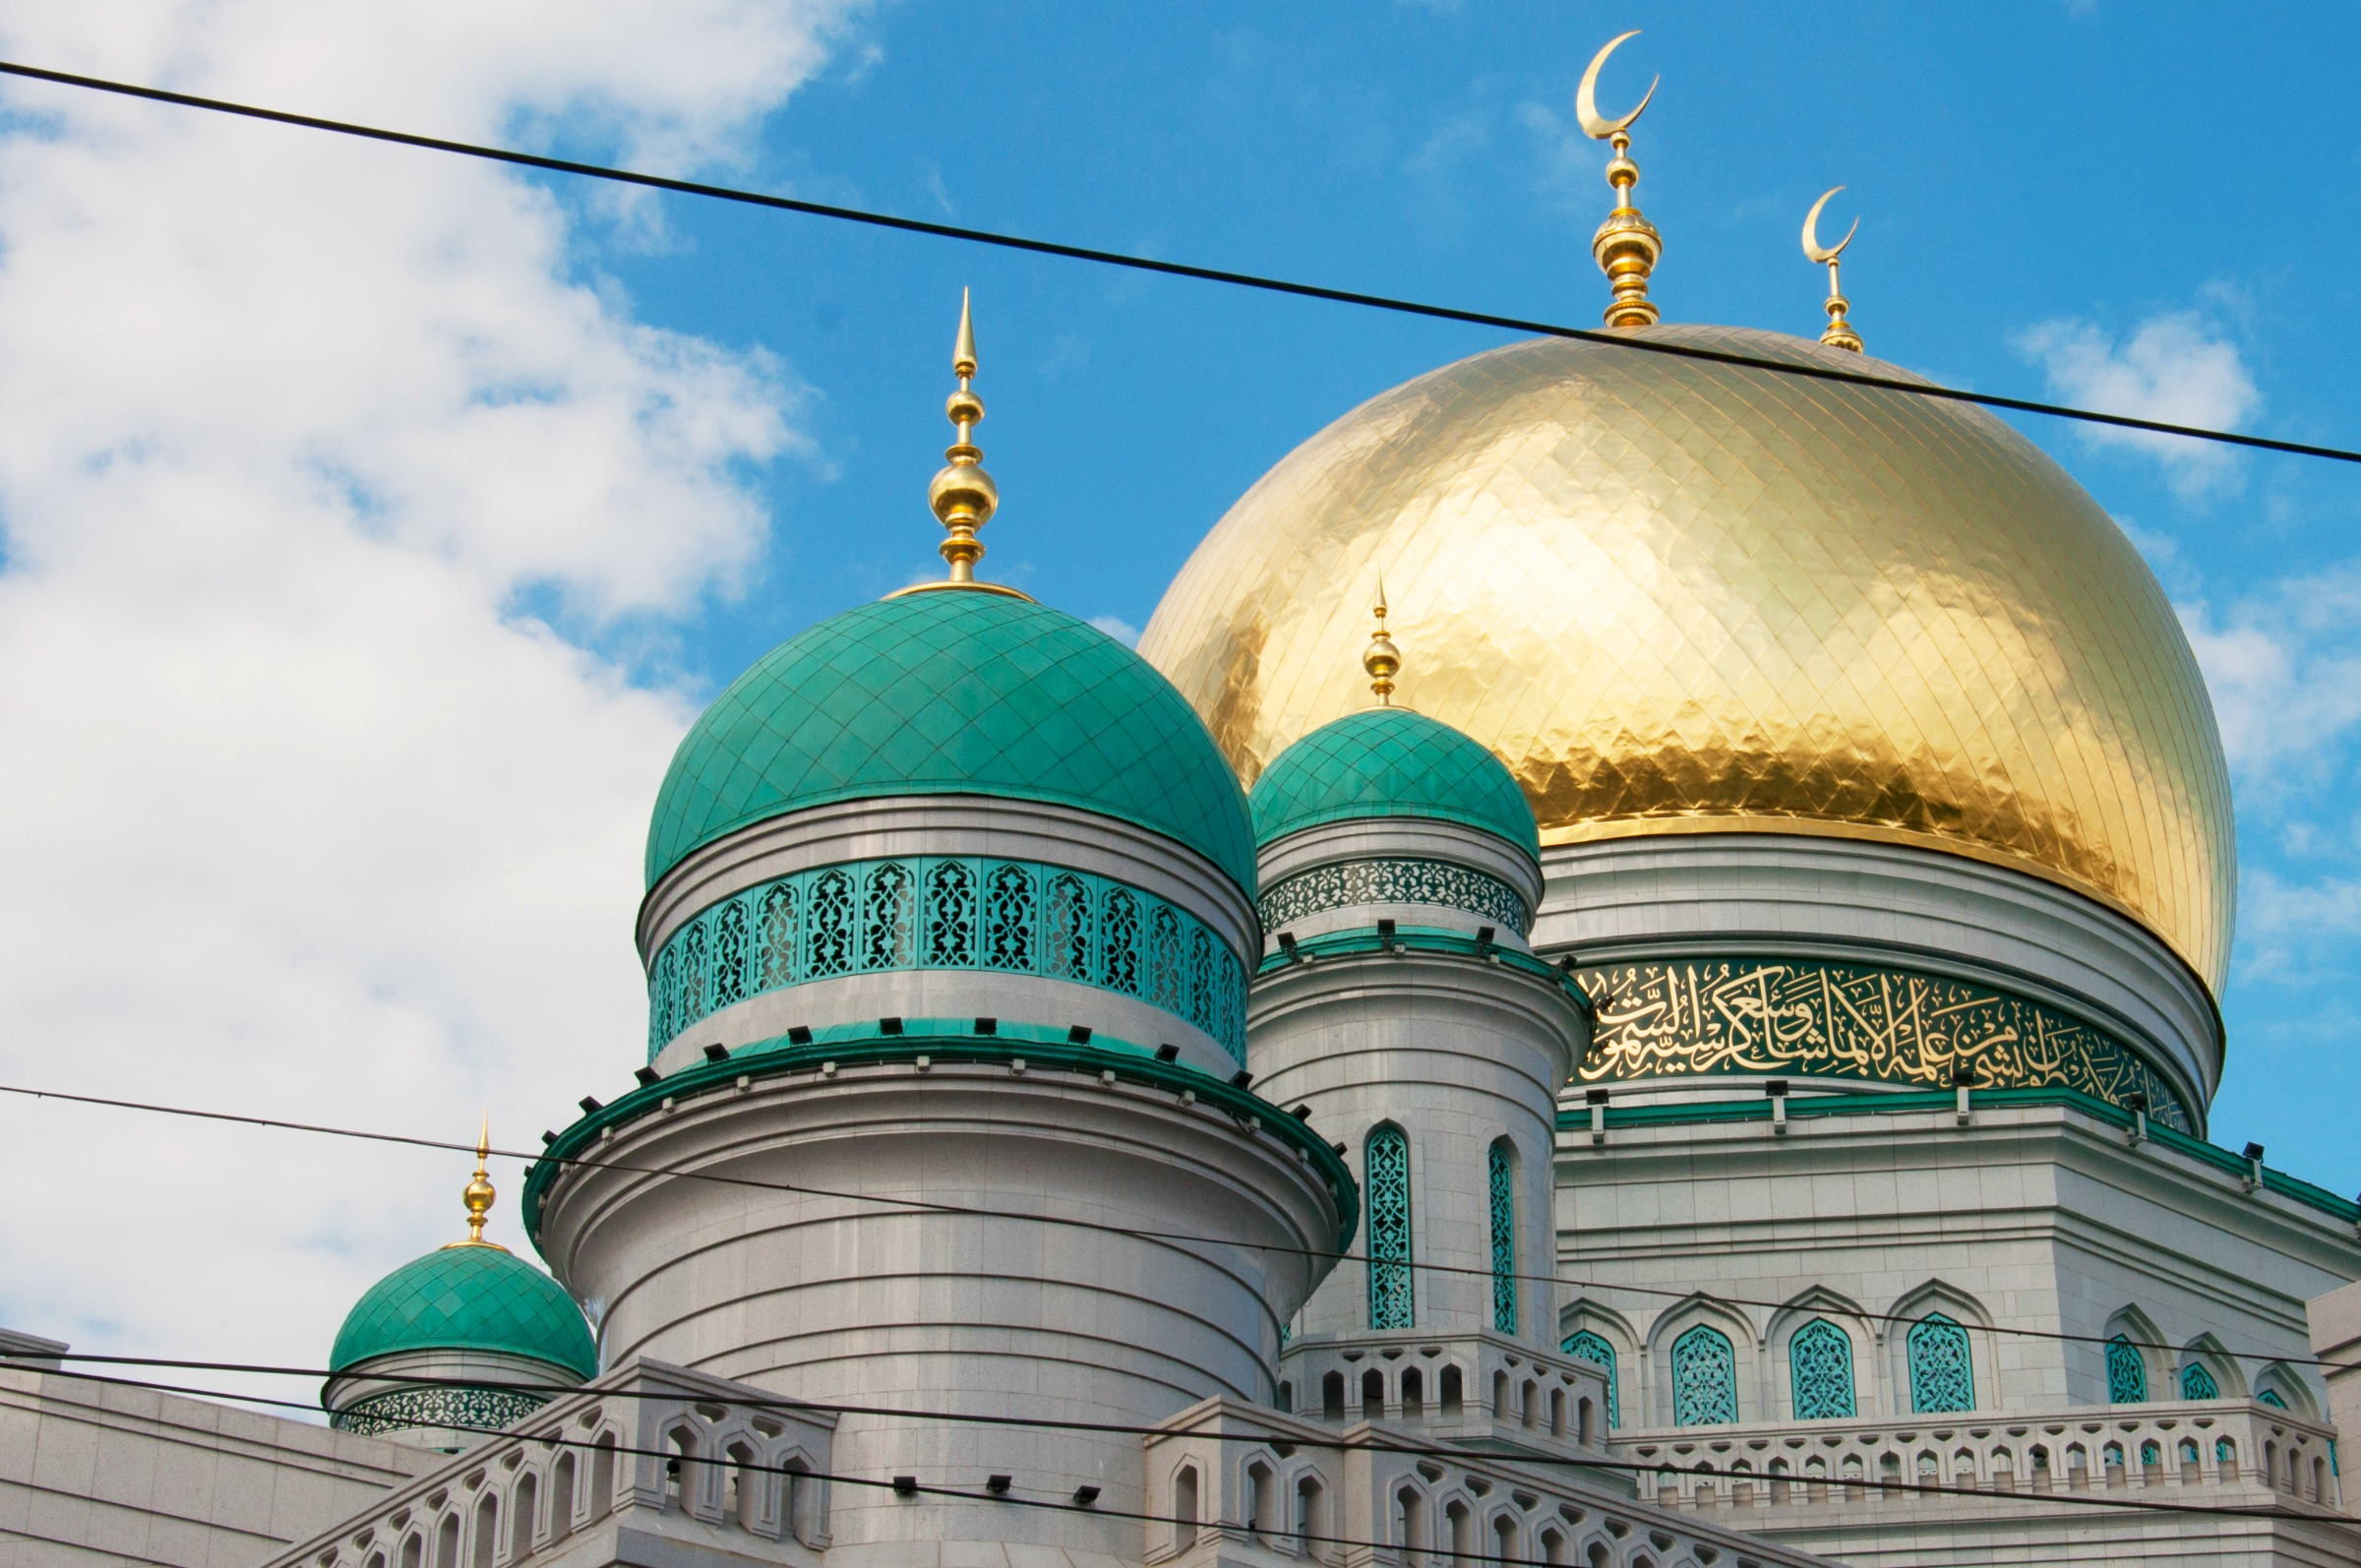 Domed roof of a mosque in Moscow